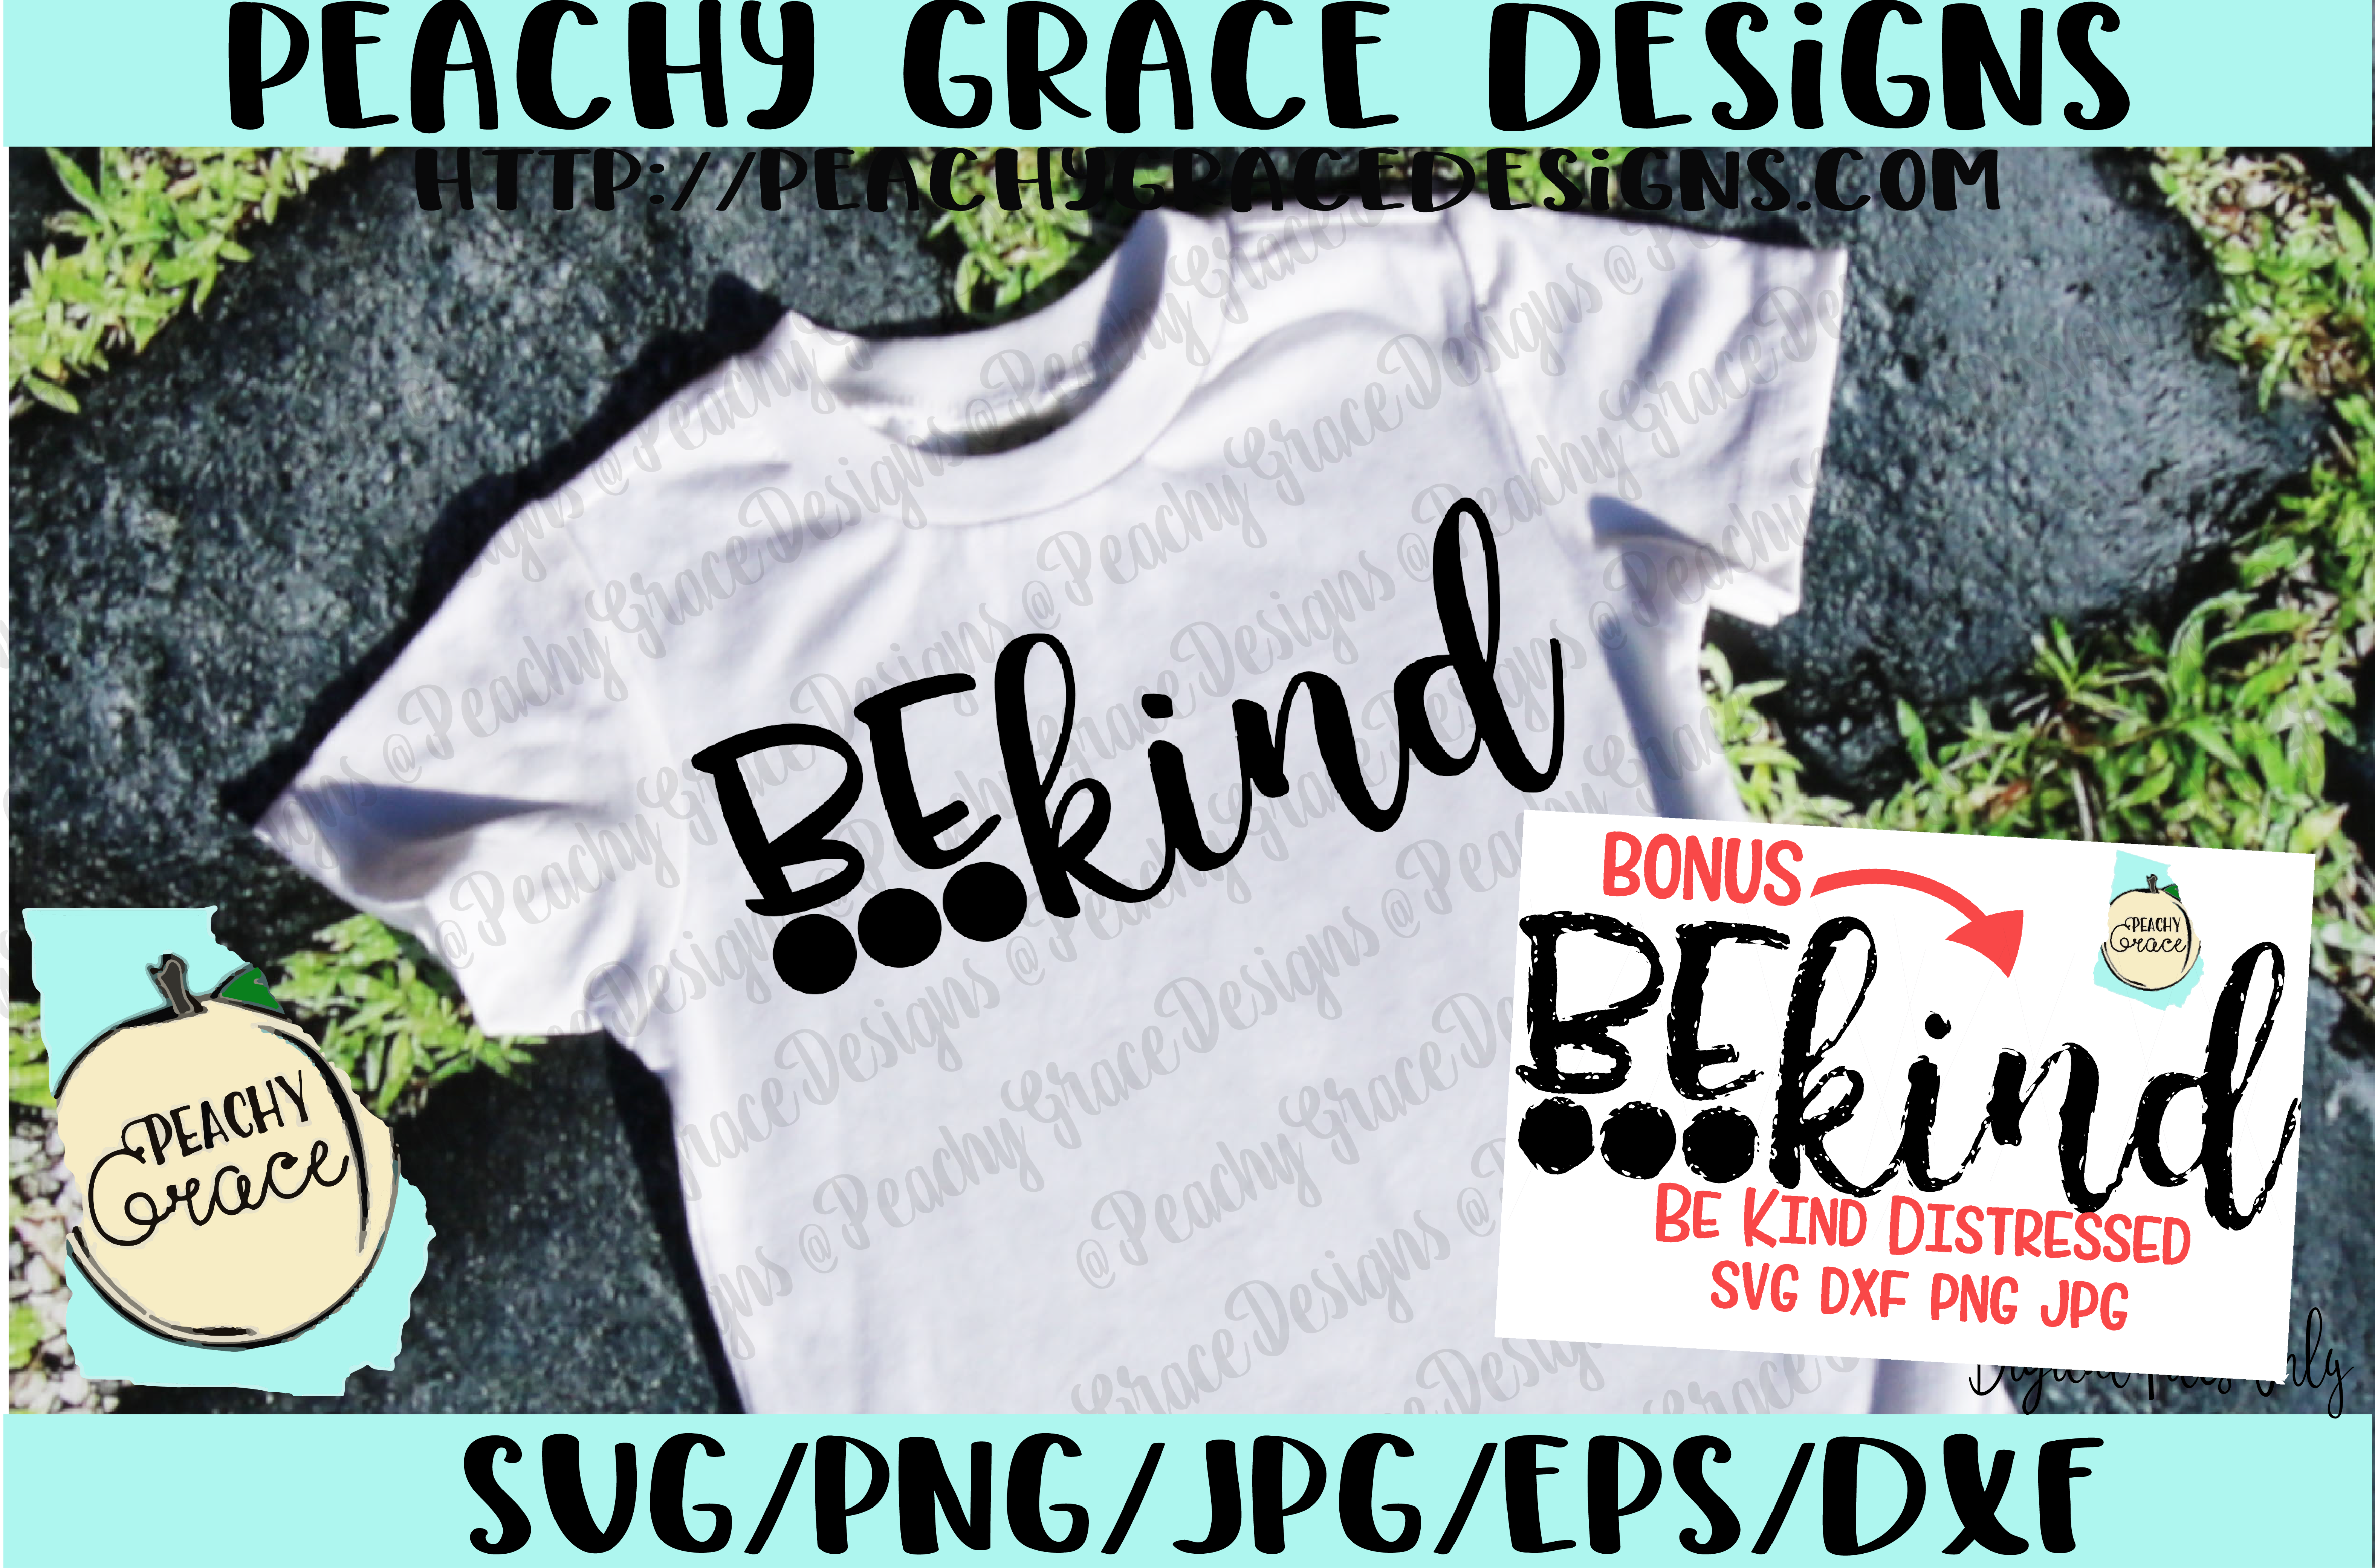 Download Free Be Kind Graphic By Peachy Grace Designs Creative Fabrica for Cricut Explore, Silhouette and other cutting machines.